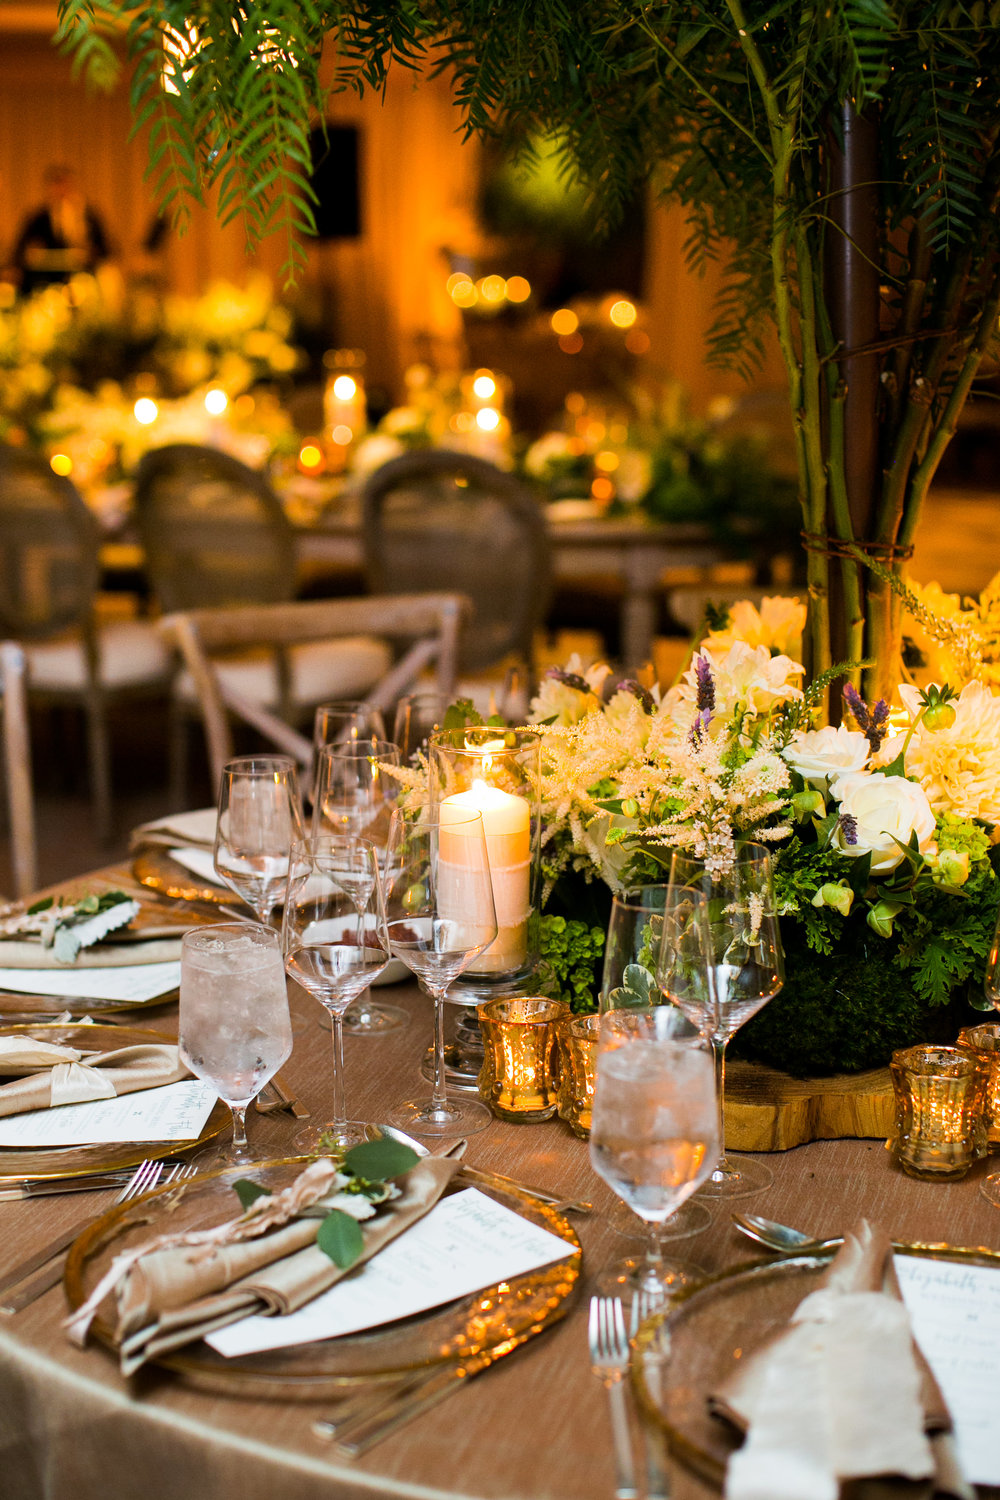 www.santabarbarawedding.com | Four Seasons Santa Barbara | Levine Fox Events | Callaway Gable Photo | Reception Table